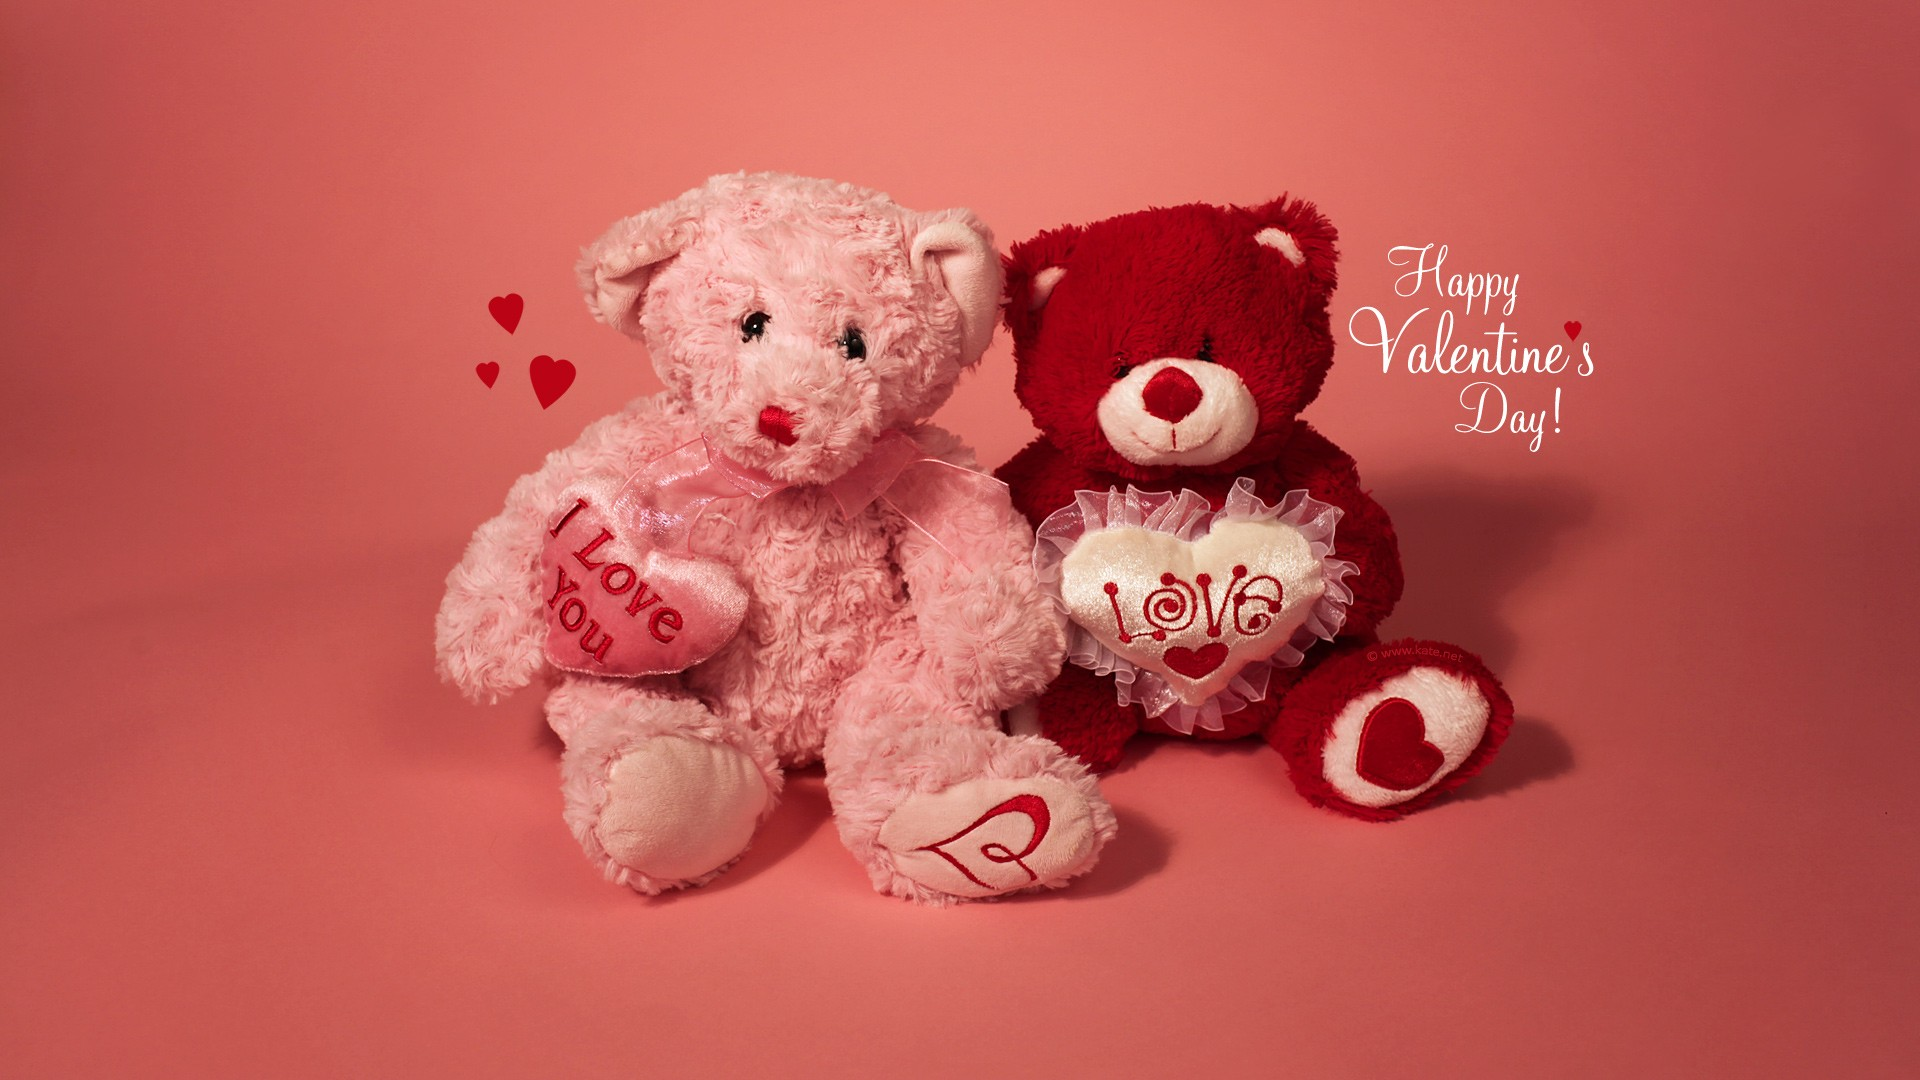 Happy Valentines Day Cute Pictures HD Wallpaper of Love 1920x1080